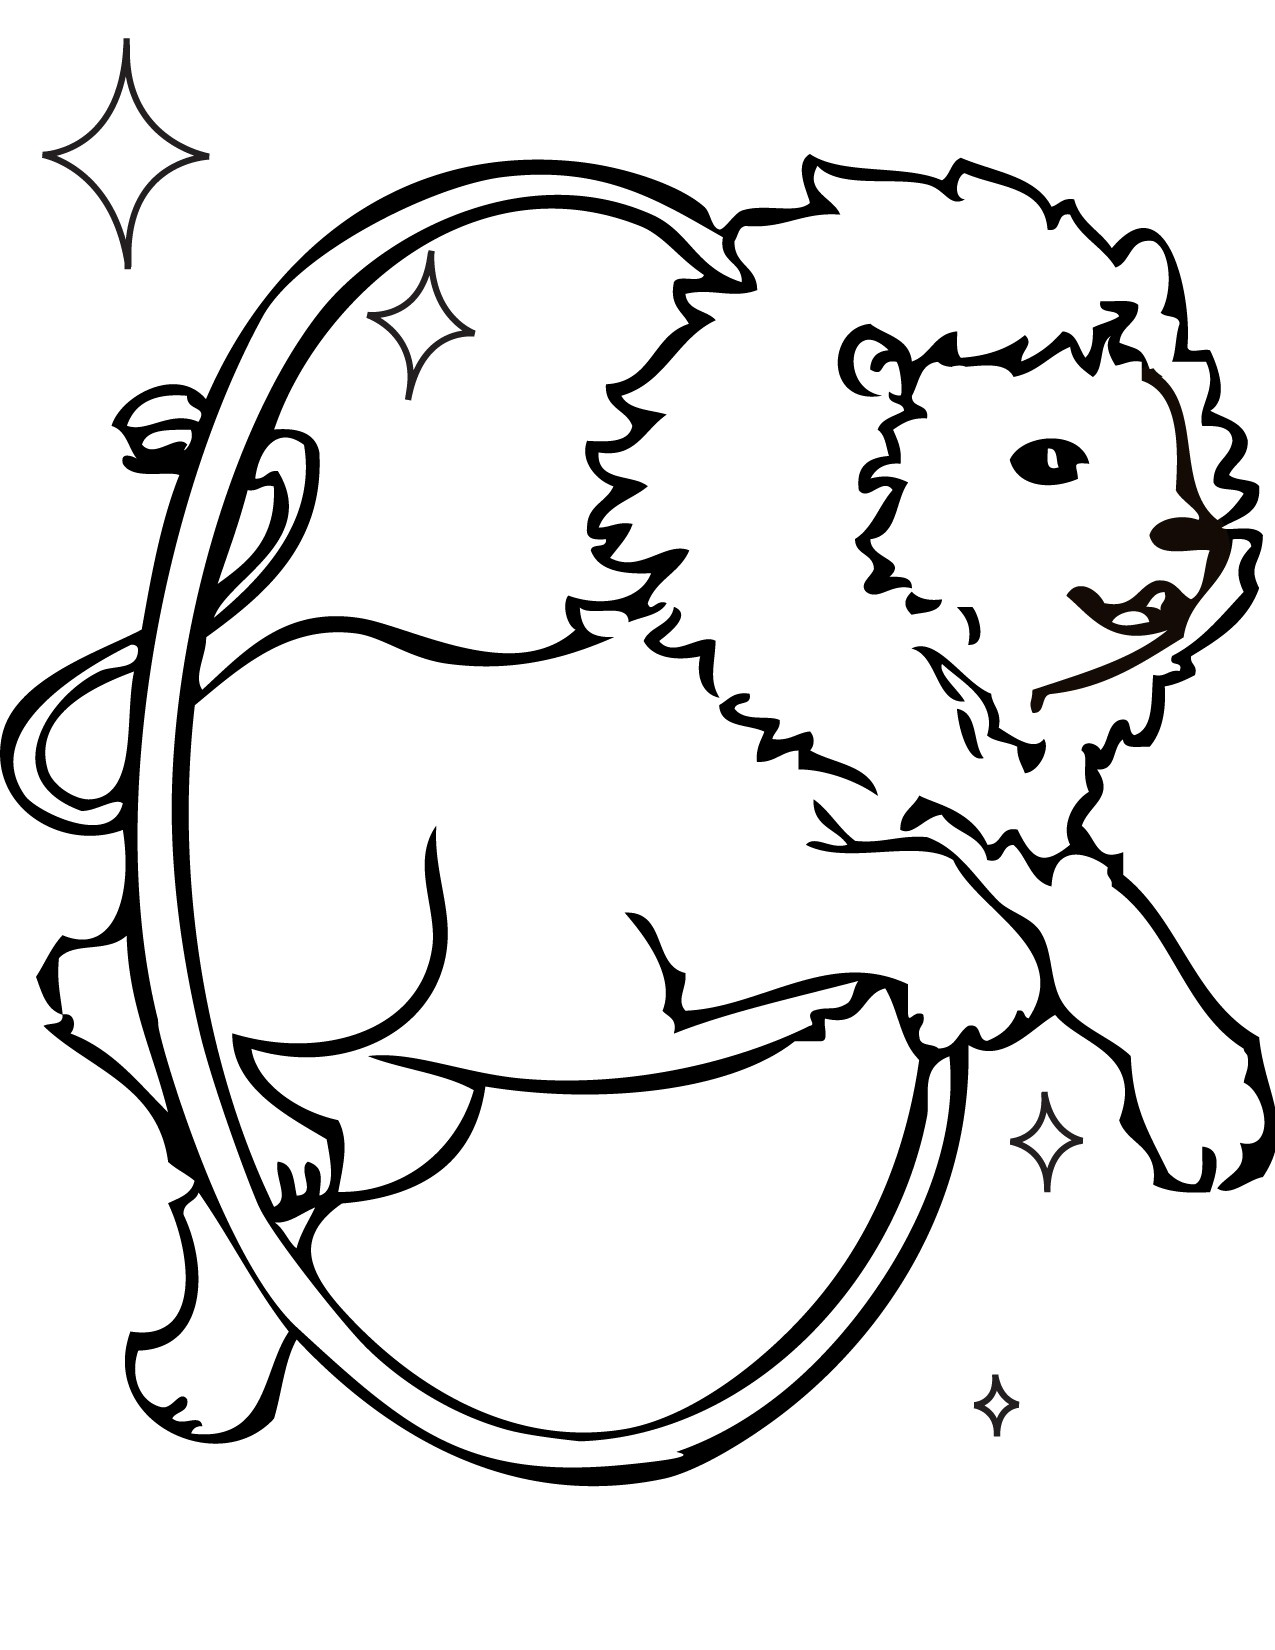 1275x1650 Circus Coloring Pages For Preschool Fresh Lion Circus Colouring